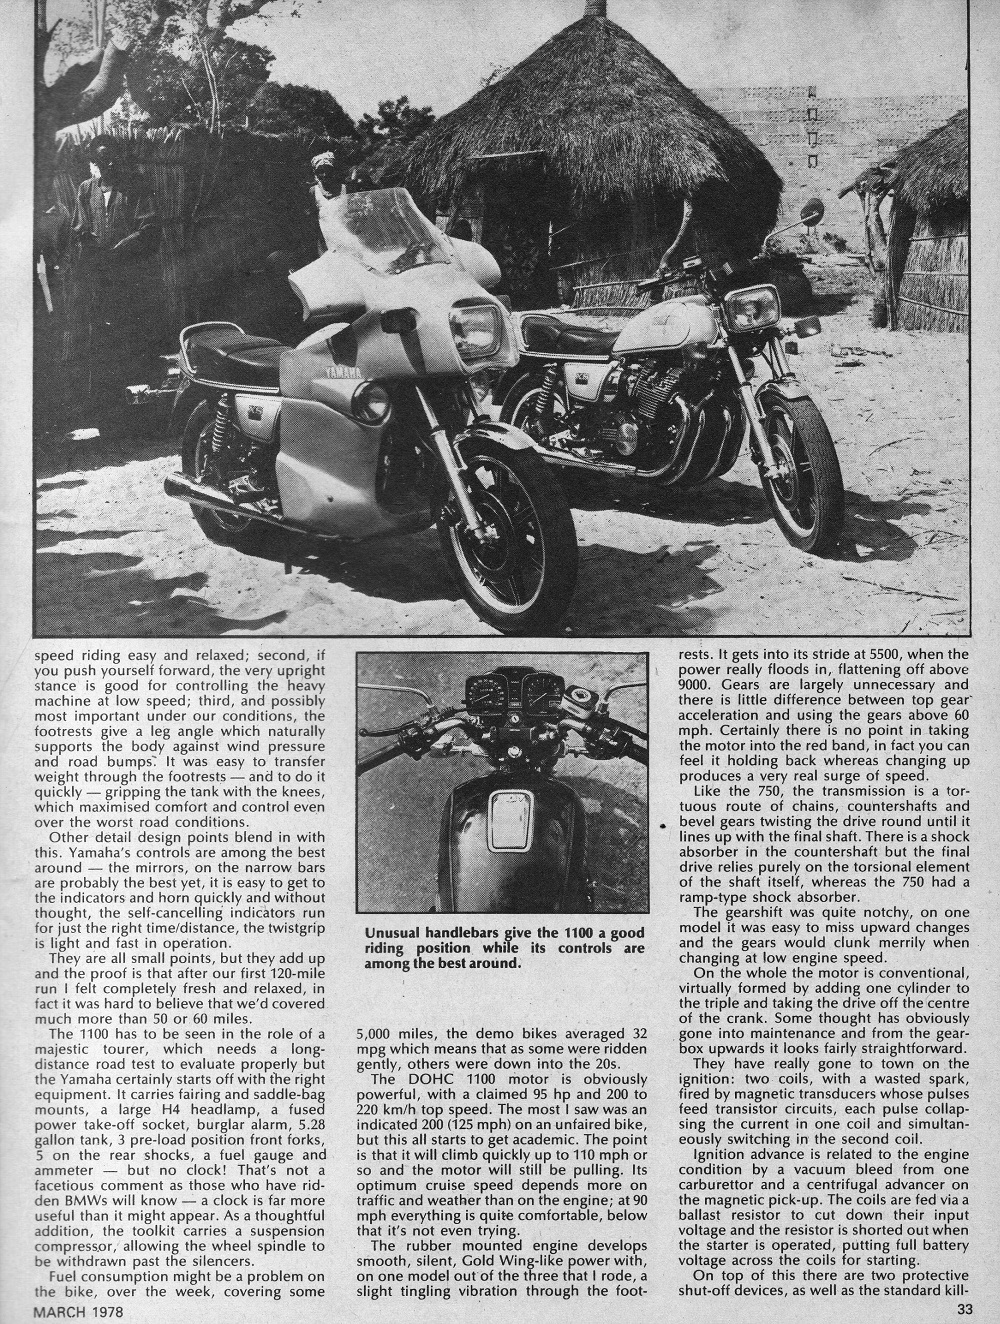 1978 Yamaha XS1100 road test.2.jpg